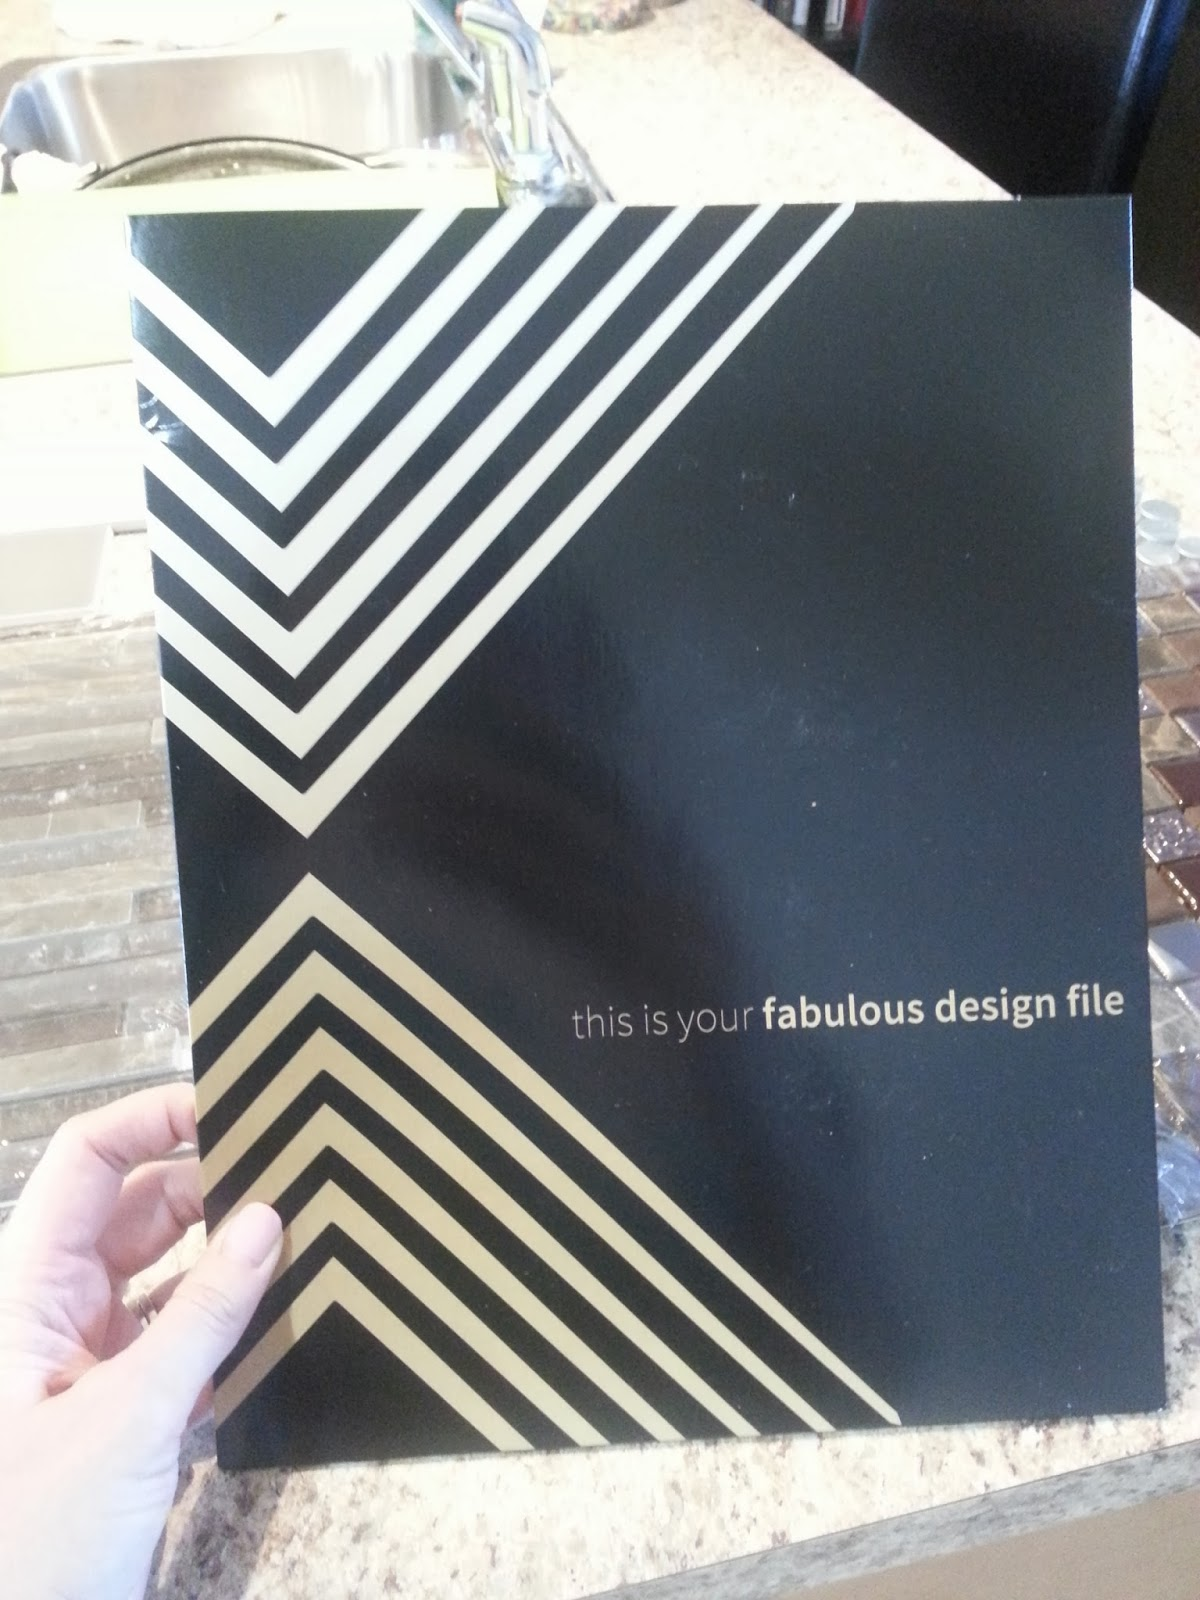 { my fabulous design file }